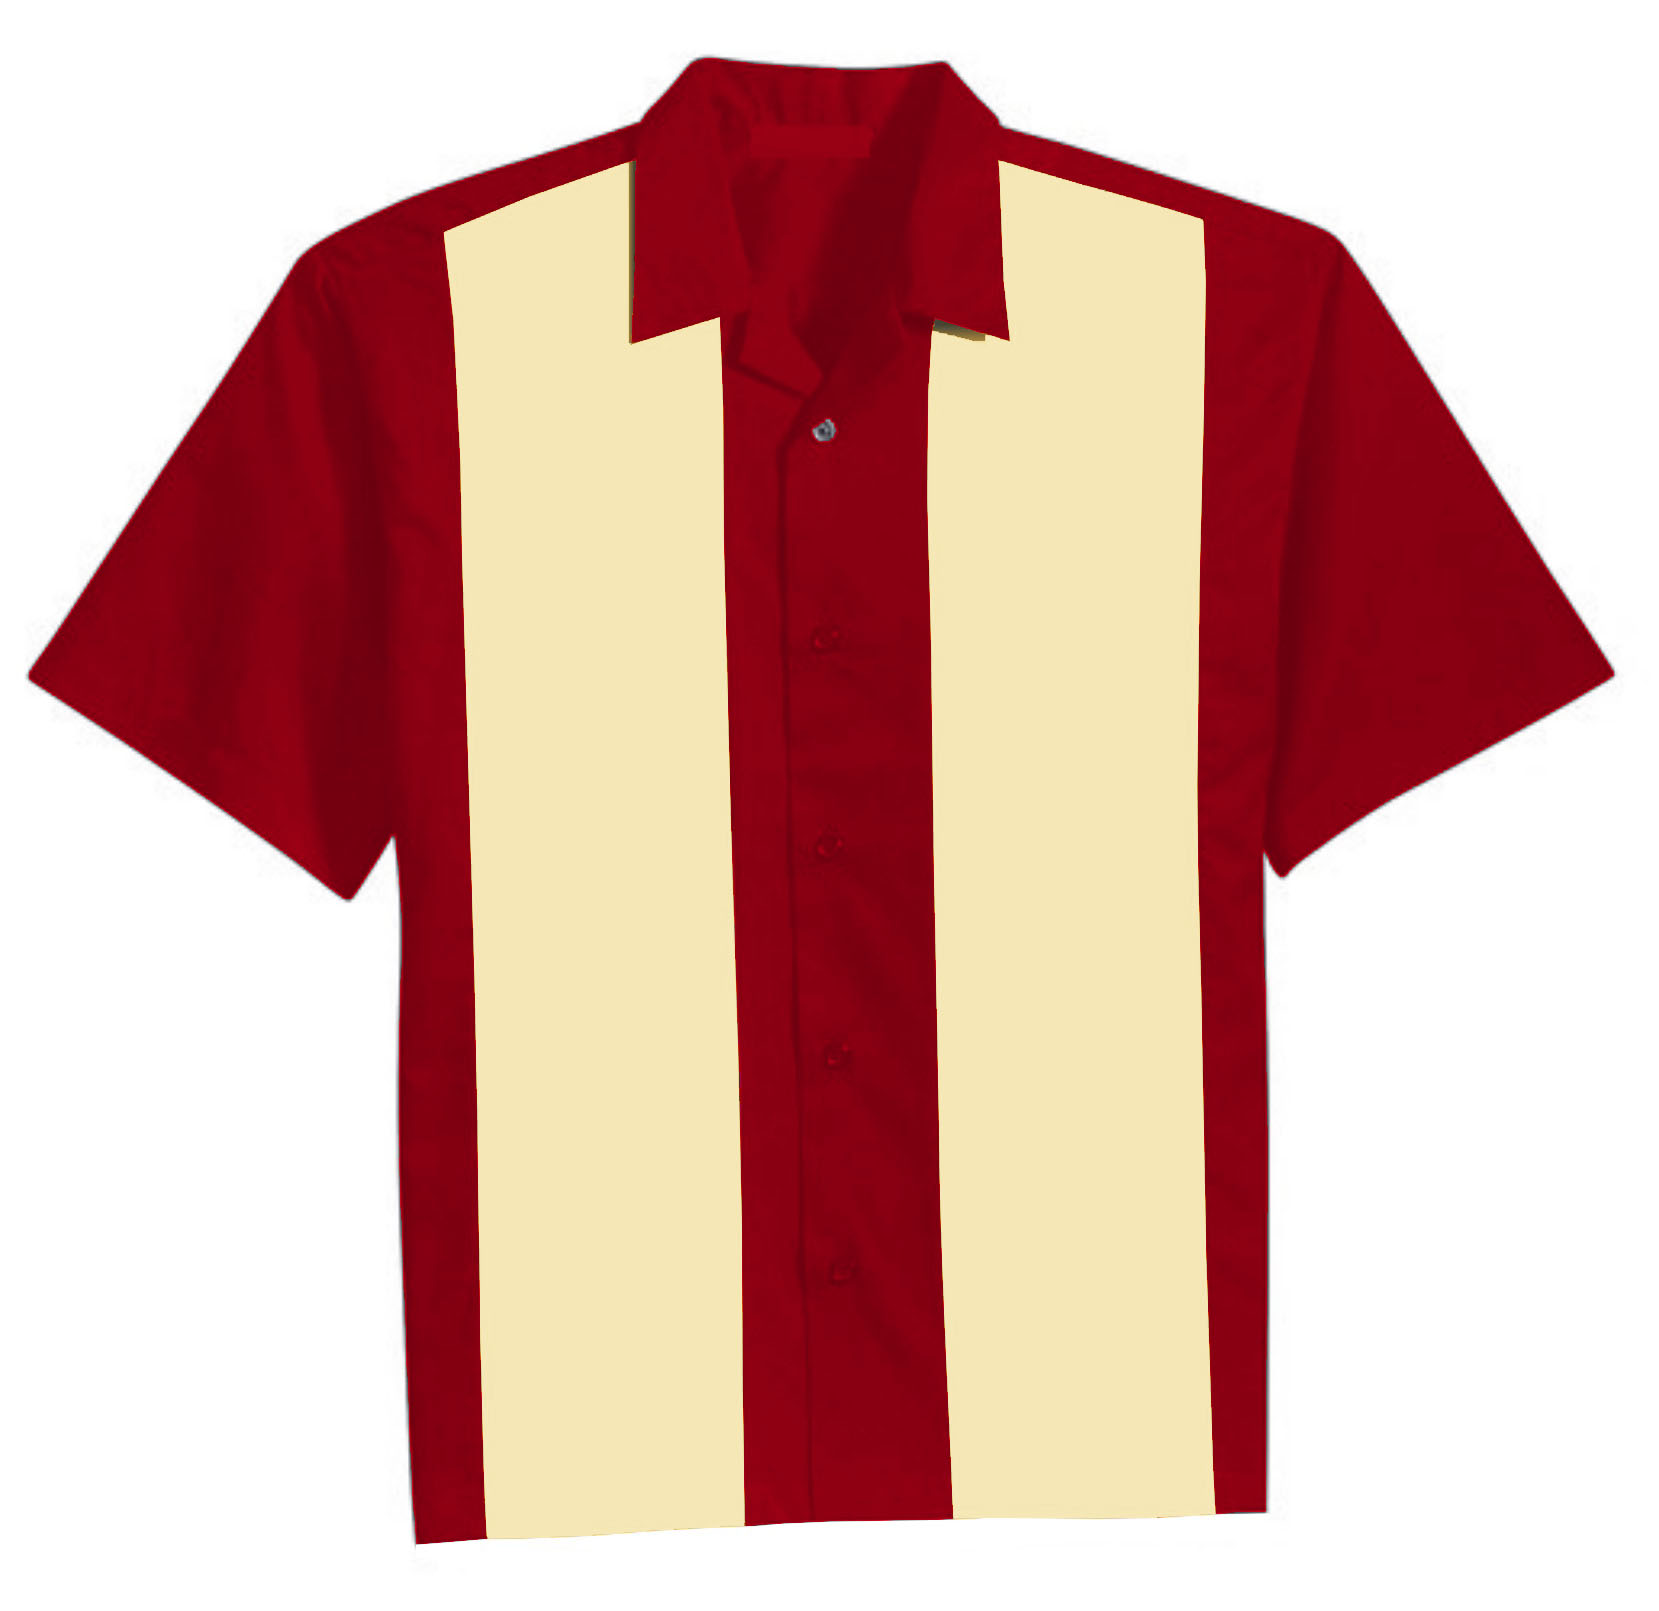 Popular Online Shirts-Buy Cheap Online Shirts lots from China ...